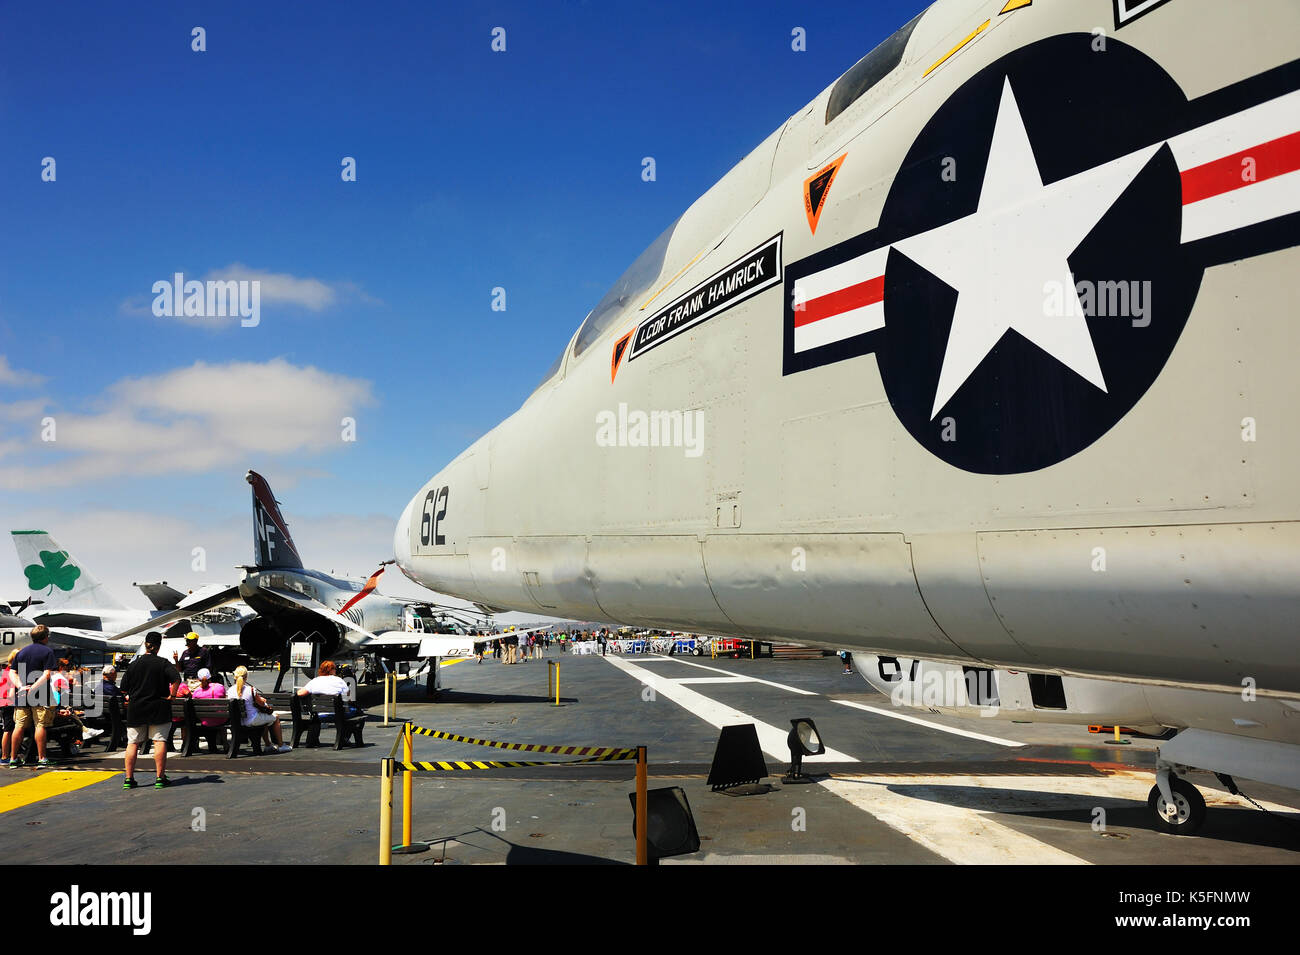 SAN DIEGO,USA - July 30 2013: The Aircraft carrier Midway as a museum of US navy at San Diego, California, USA. Stock Photo